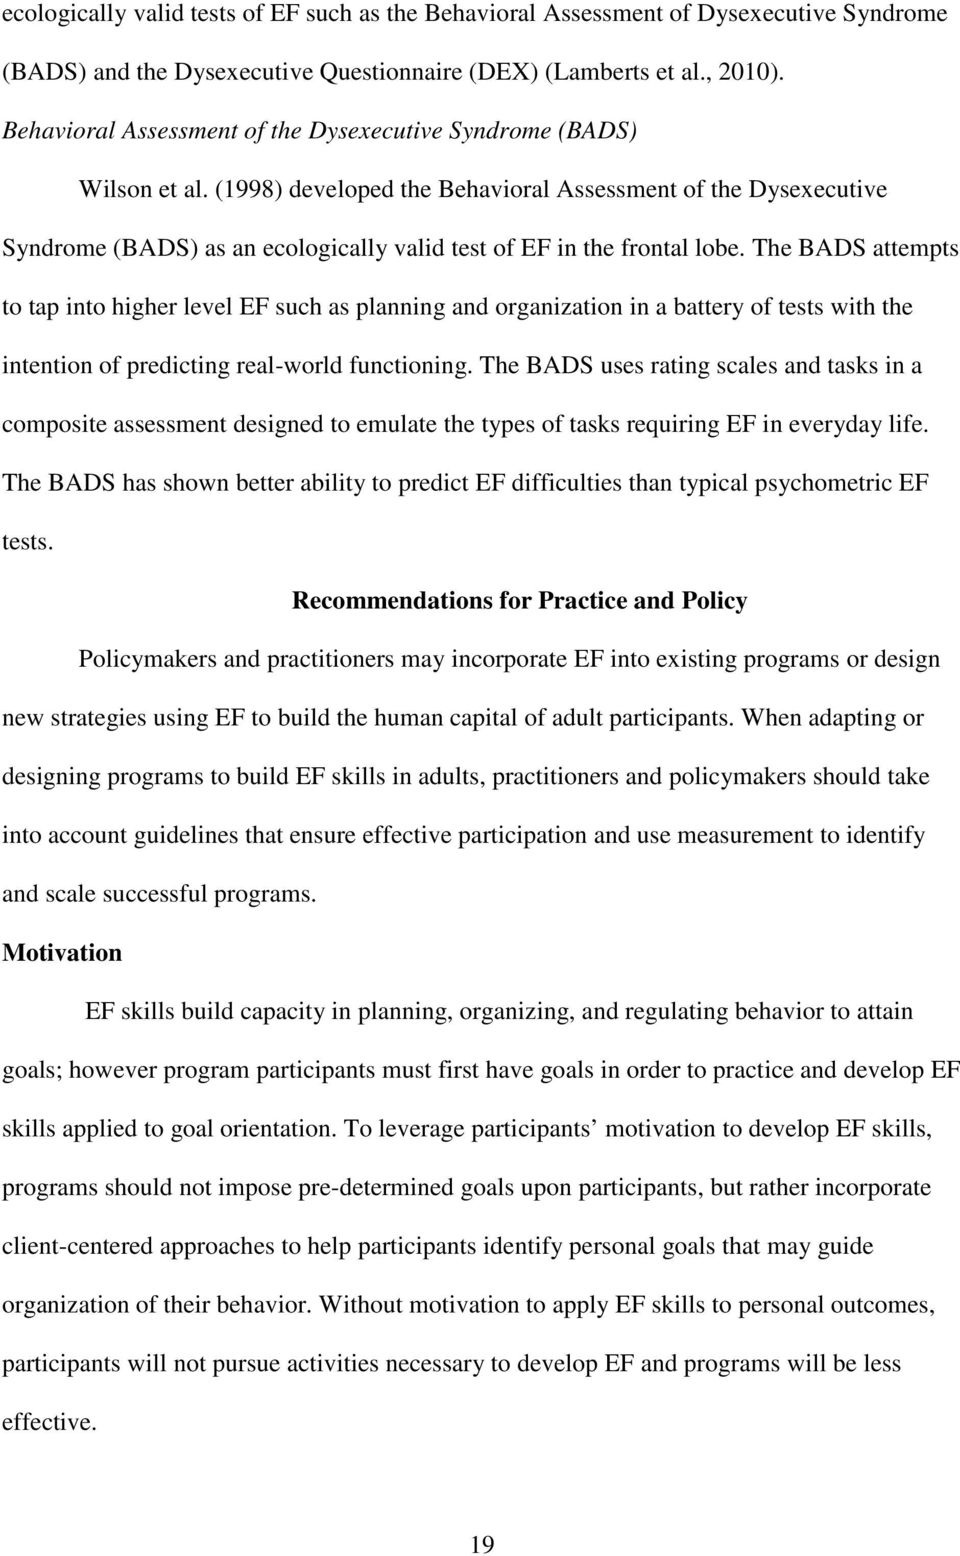 (1998) developed the Behavioral Assessment of the Dysexecutive Syndrome (BADS) as an ecologically valid test of EF in the frontal lobe.